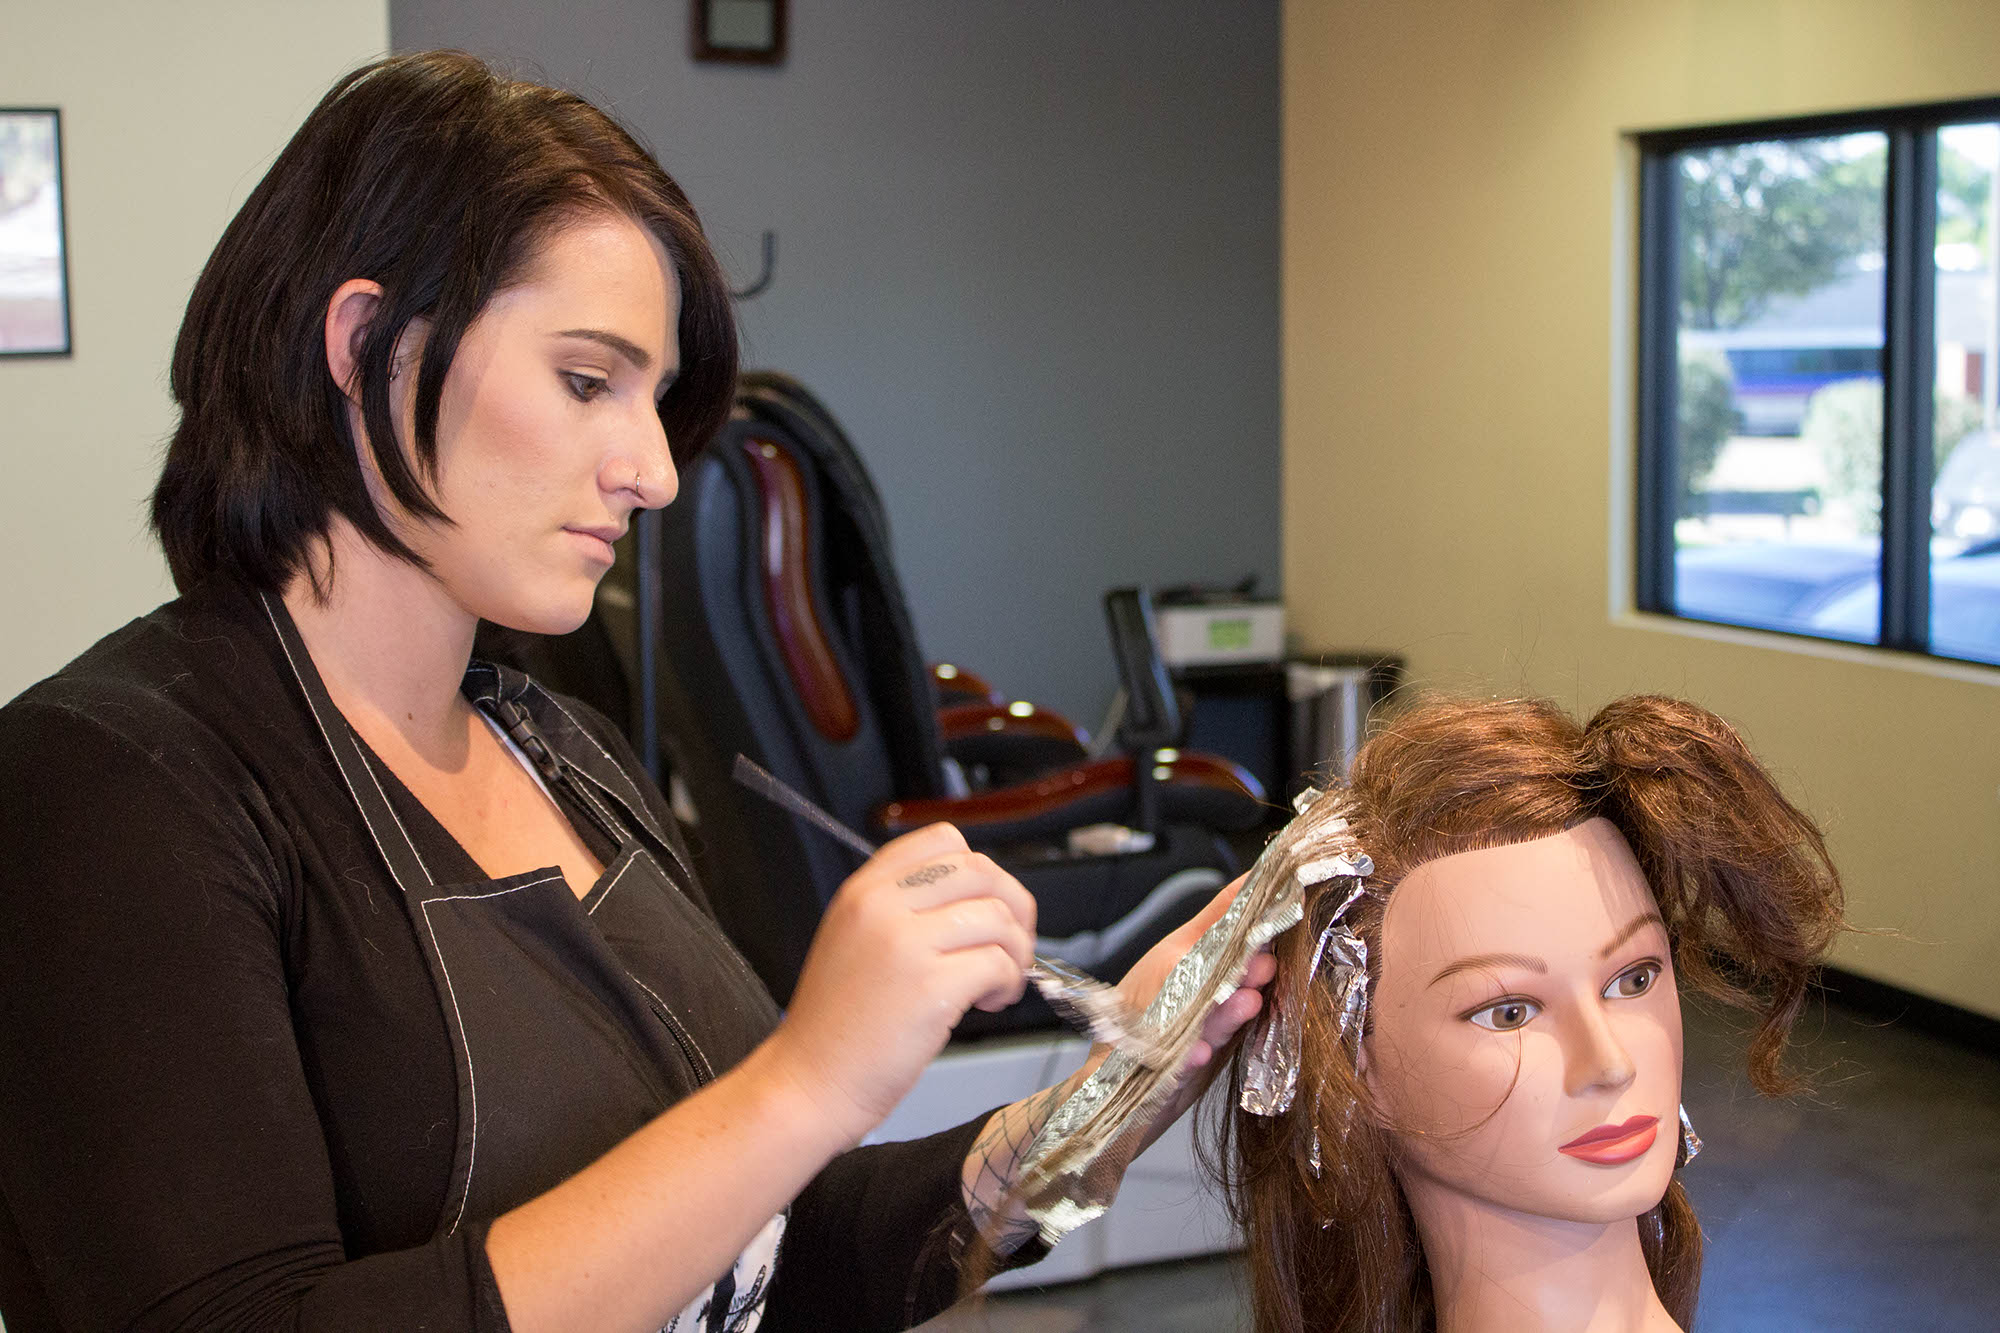 Hair Styling Classes For Makeup Artists Magnificent Hairstyling Classes & Certificate Program  Hair Cutting School In .